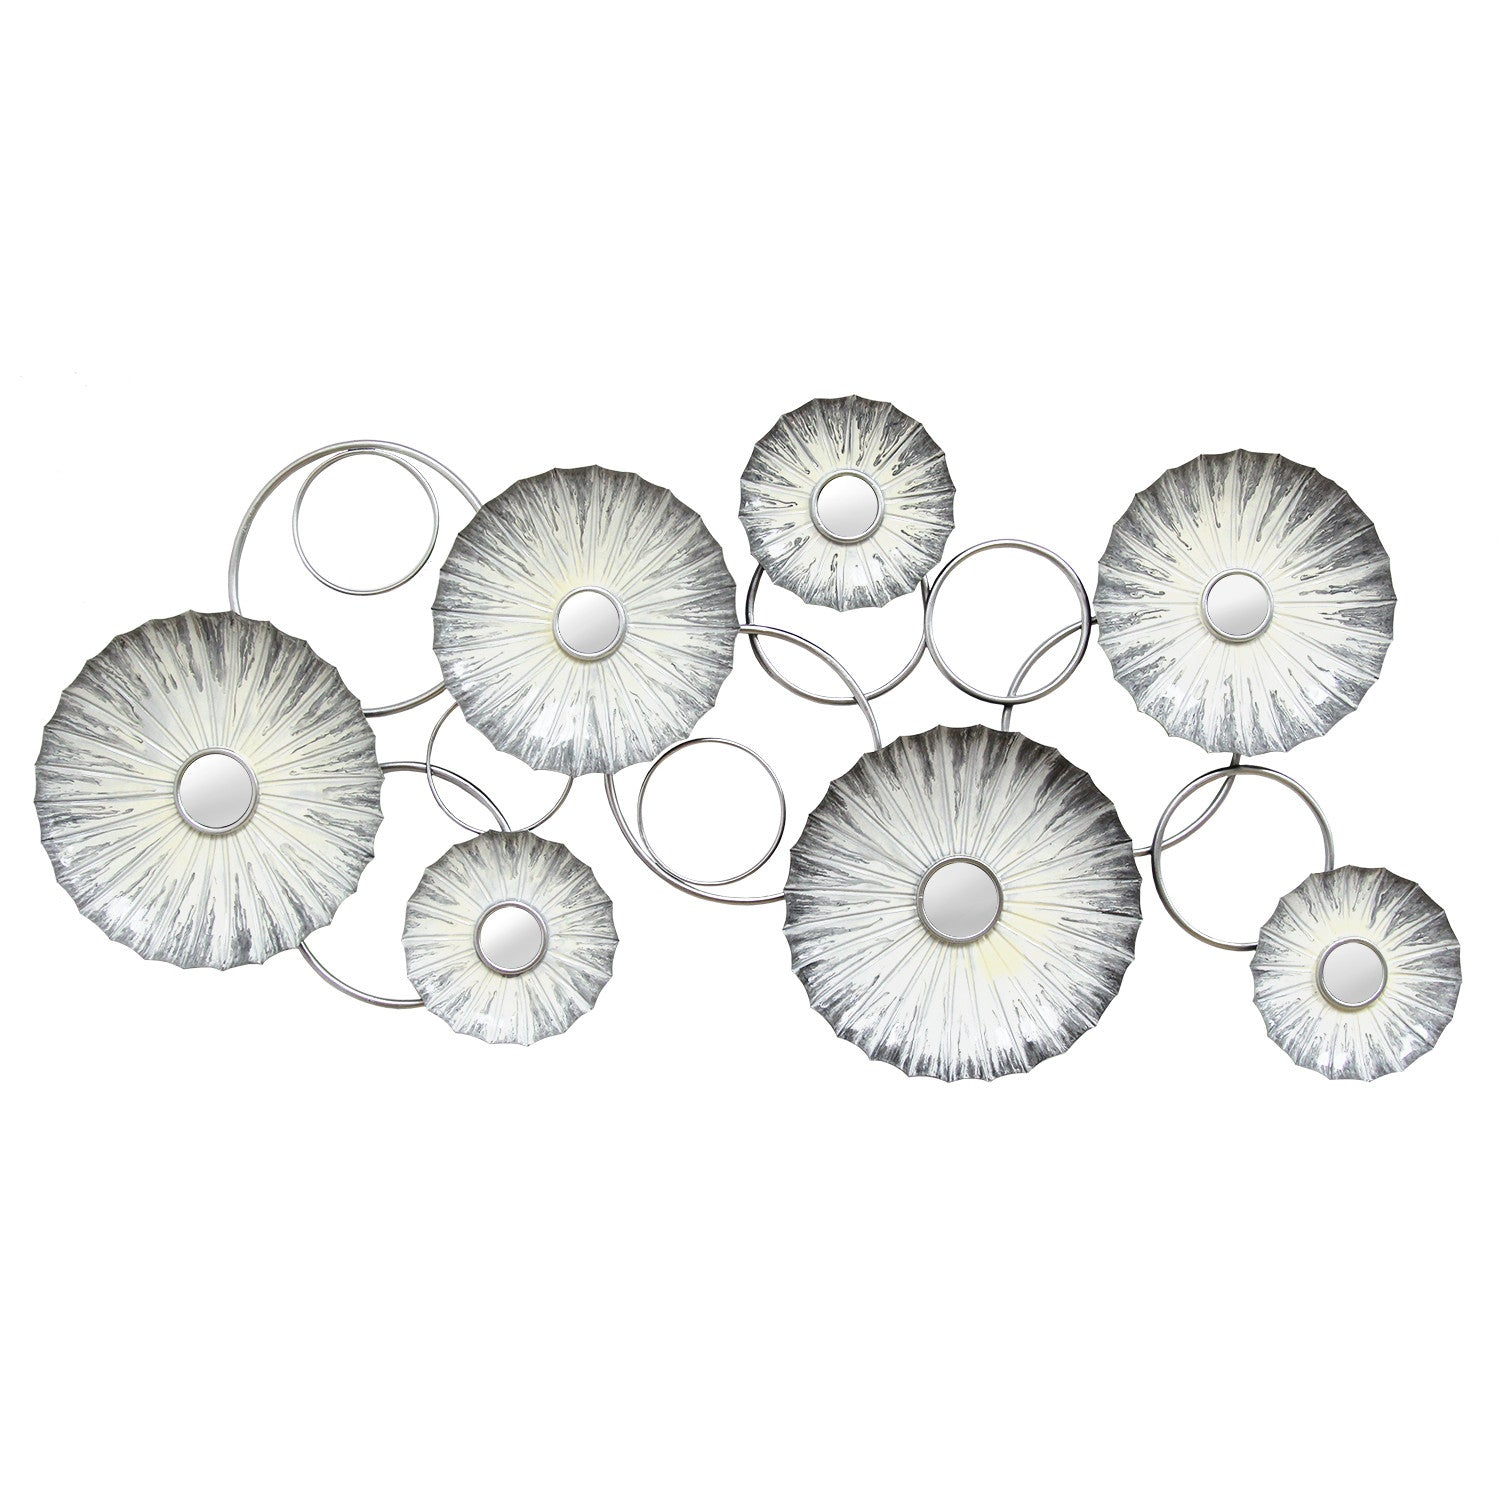 Oyster Mirrored Wall Décor – Stratton Home Decor